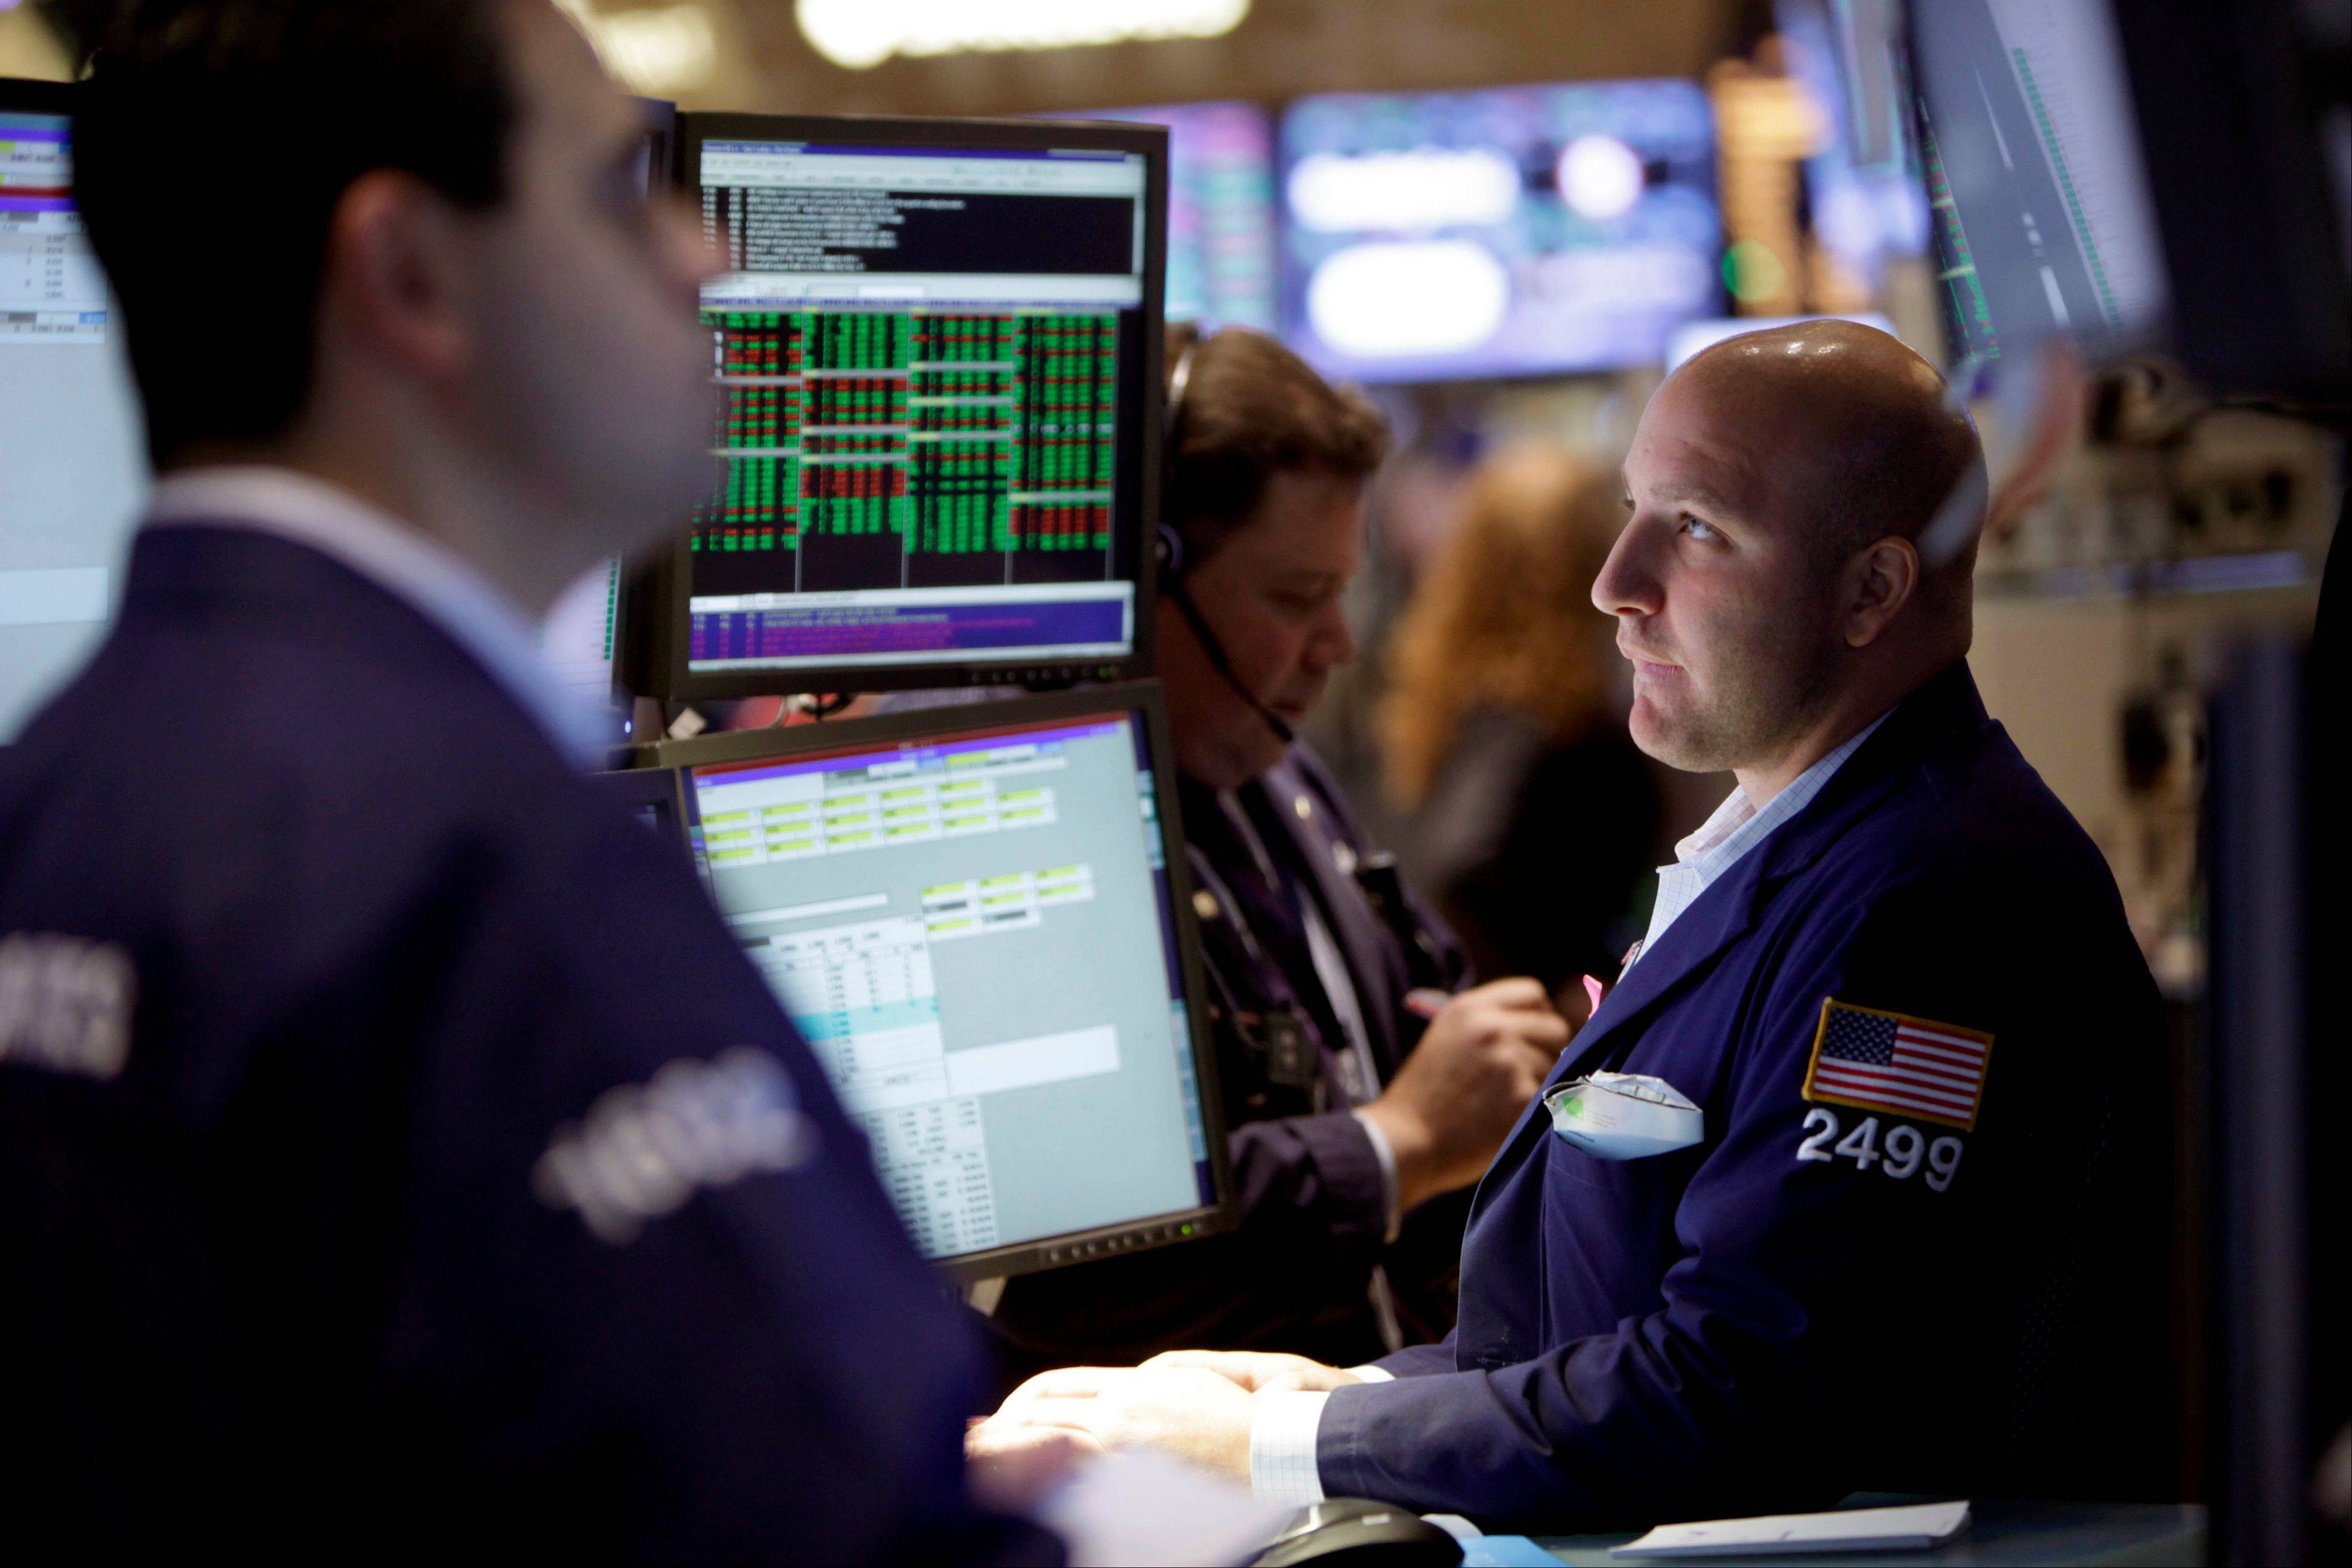 Stocks rose, sending the Standard & Poor's 500 Index higher for a second day, amid investor optimism that lawmakers will reach a resolution in federal budget negotiations.